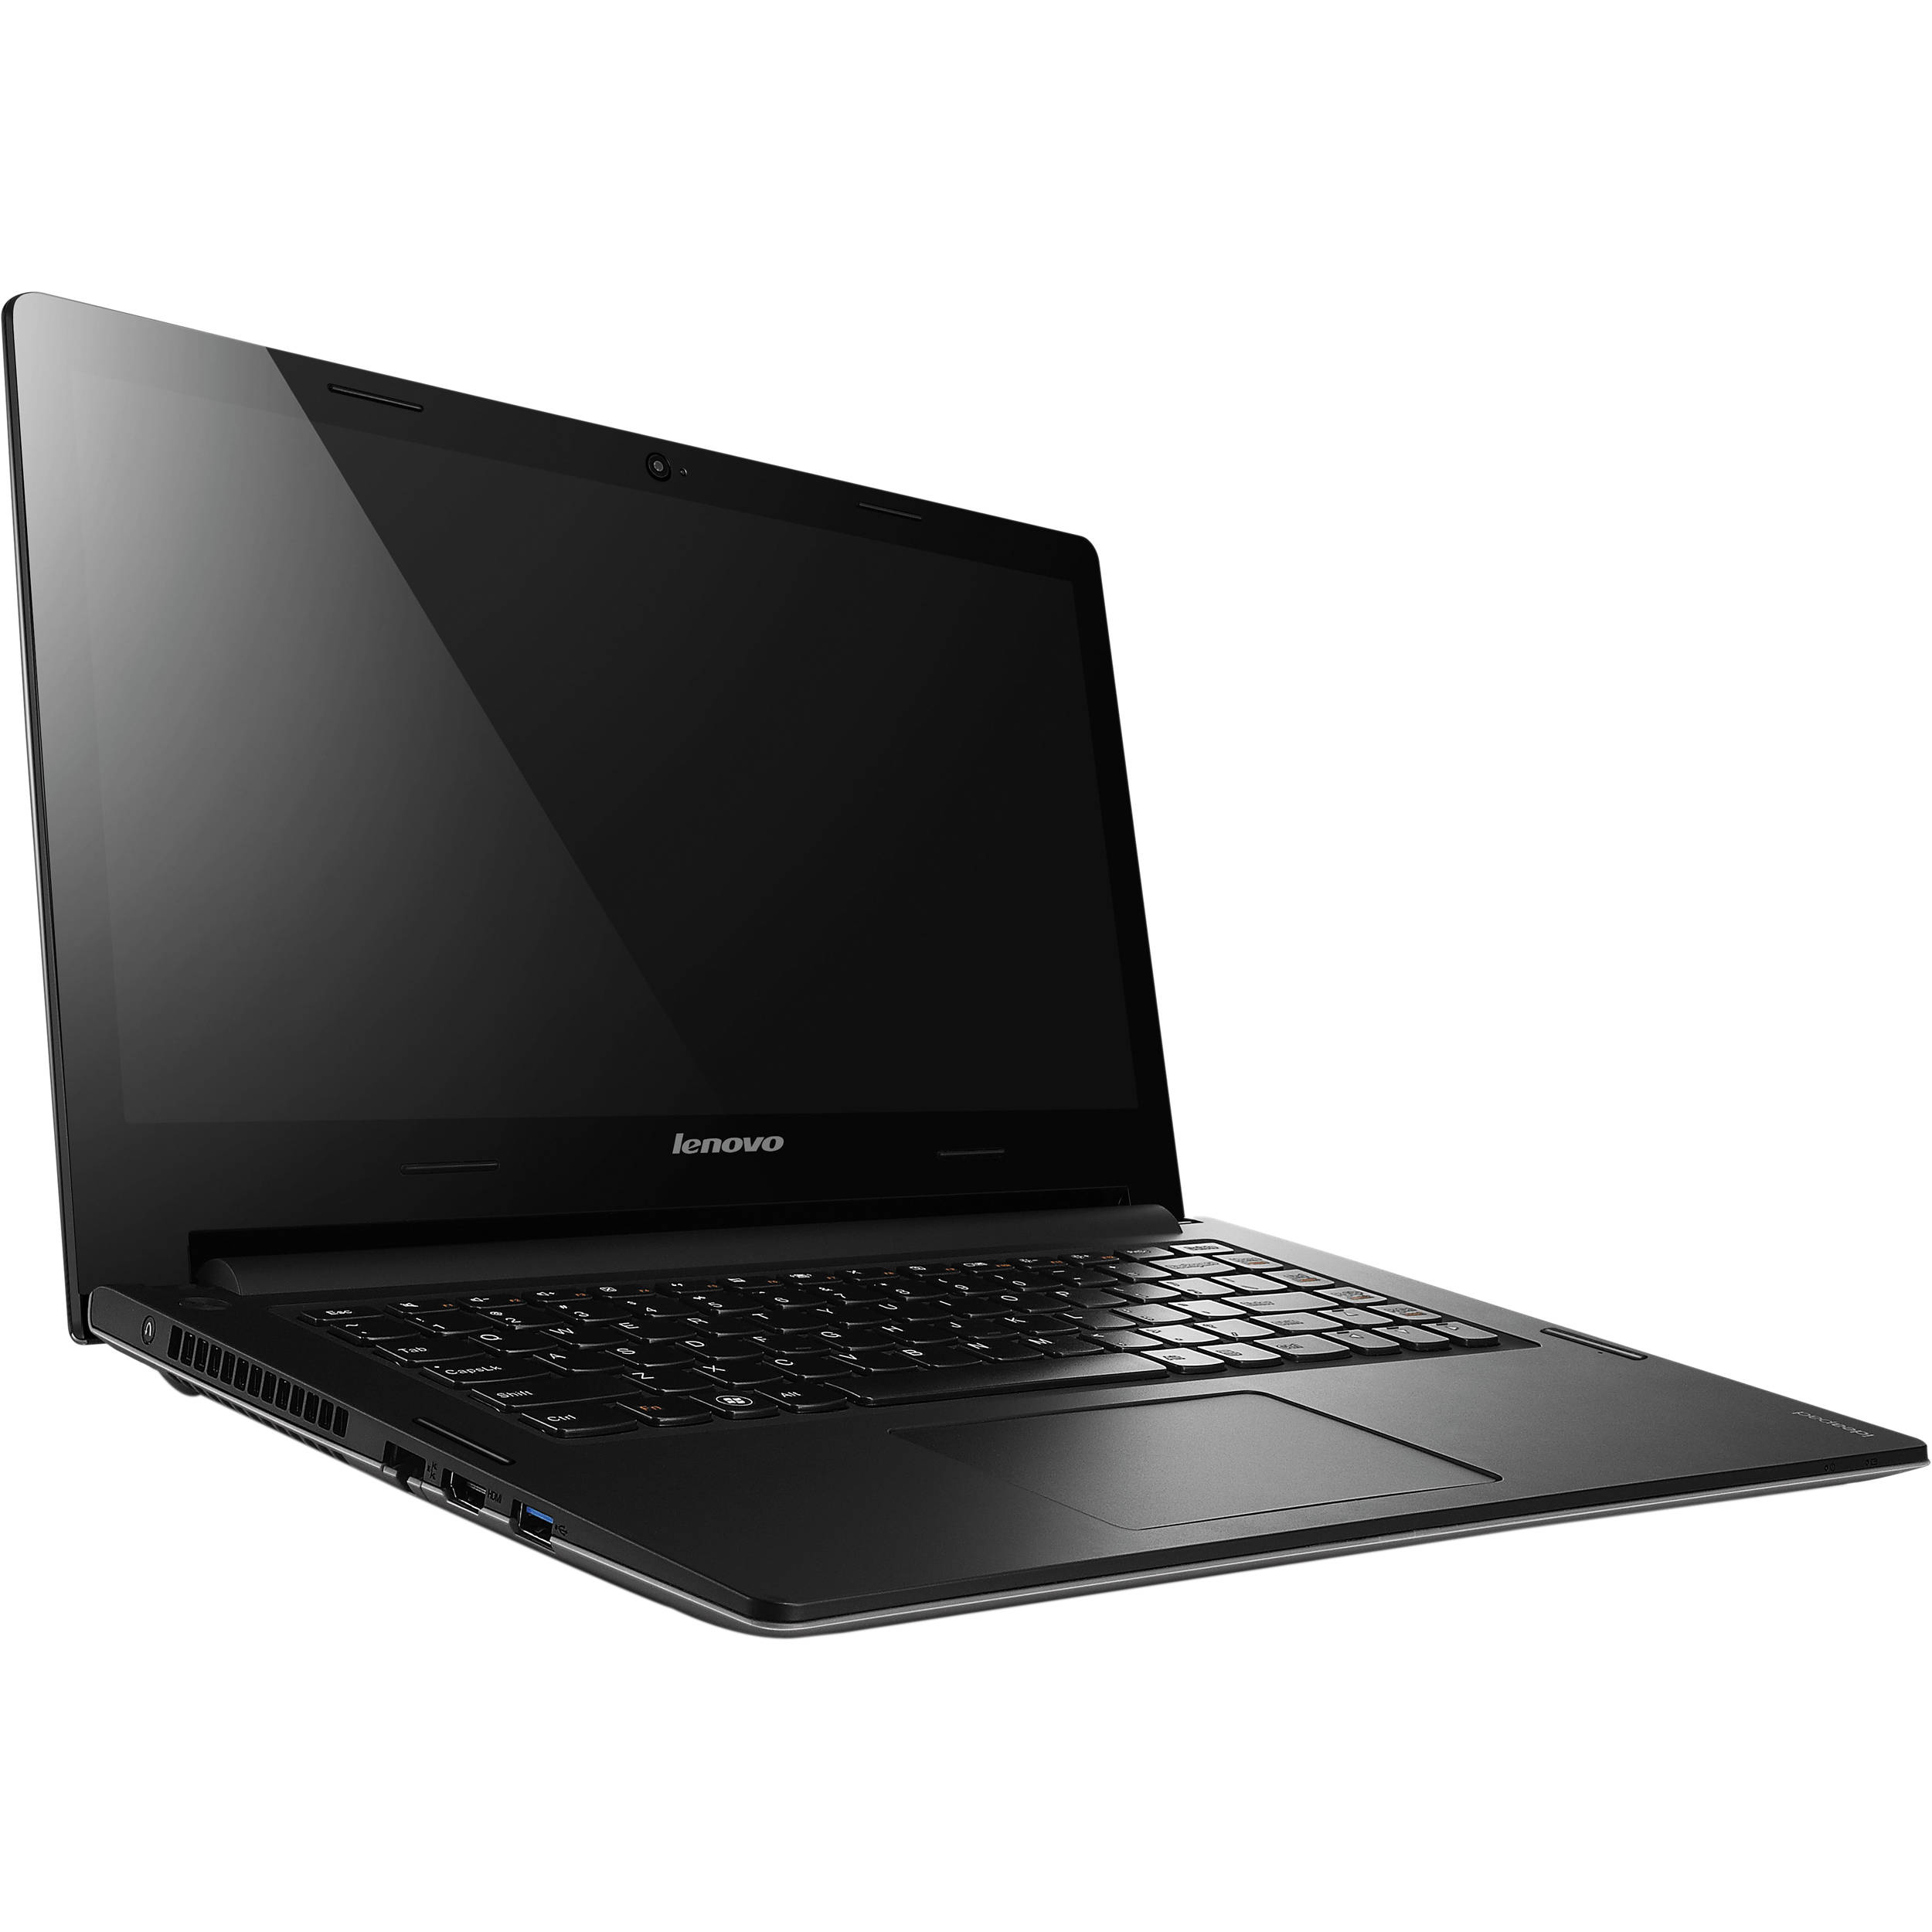 LENOVO IDEAPAD S400 TOUCH INTEL WIDI DRIVER FOR MAC